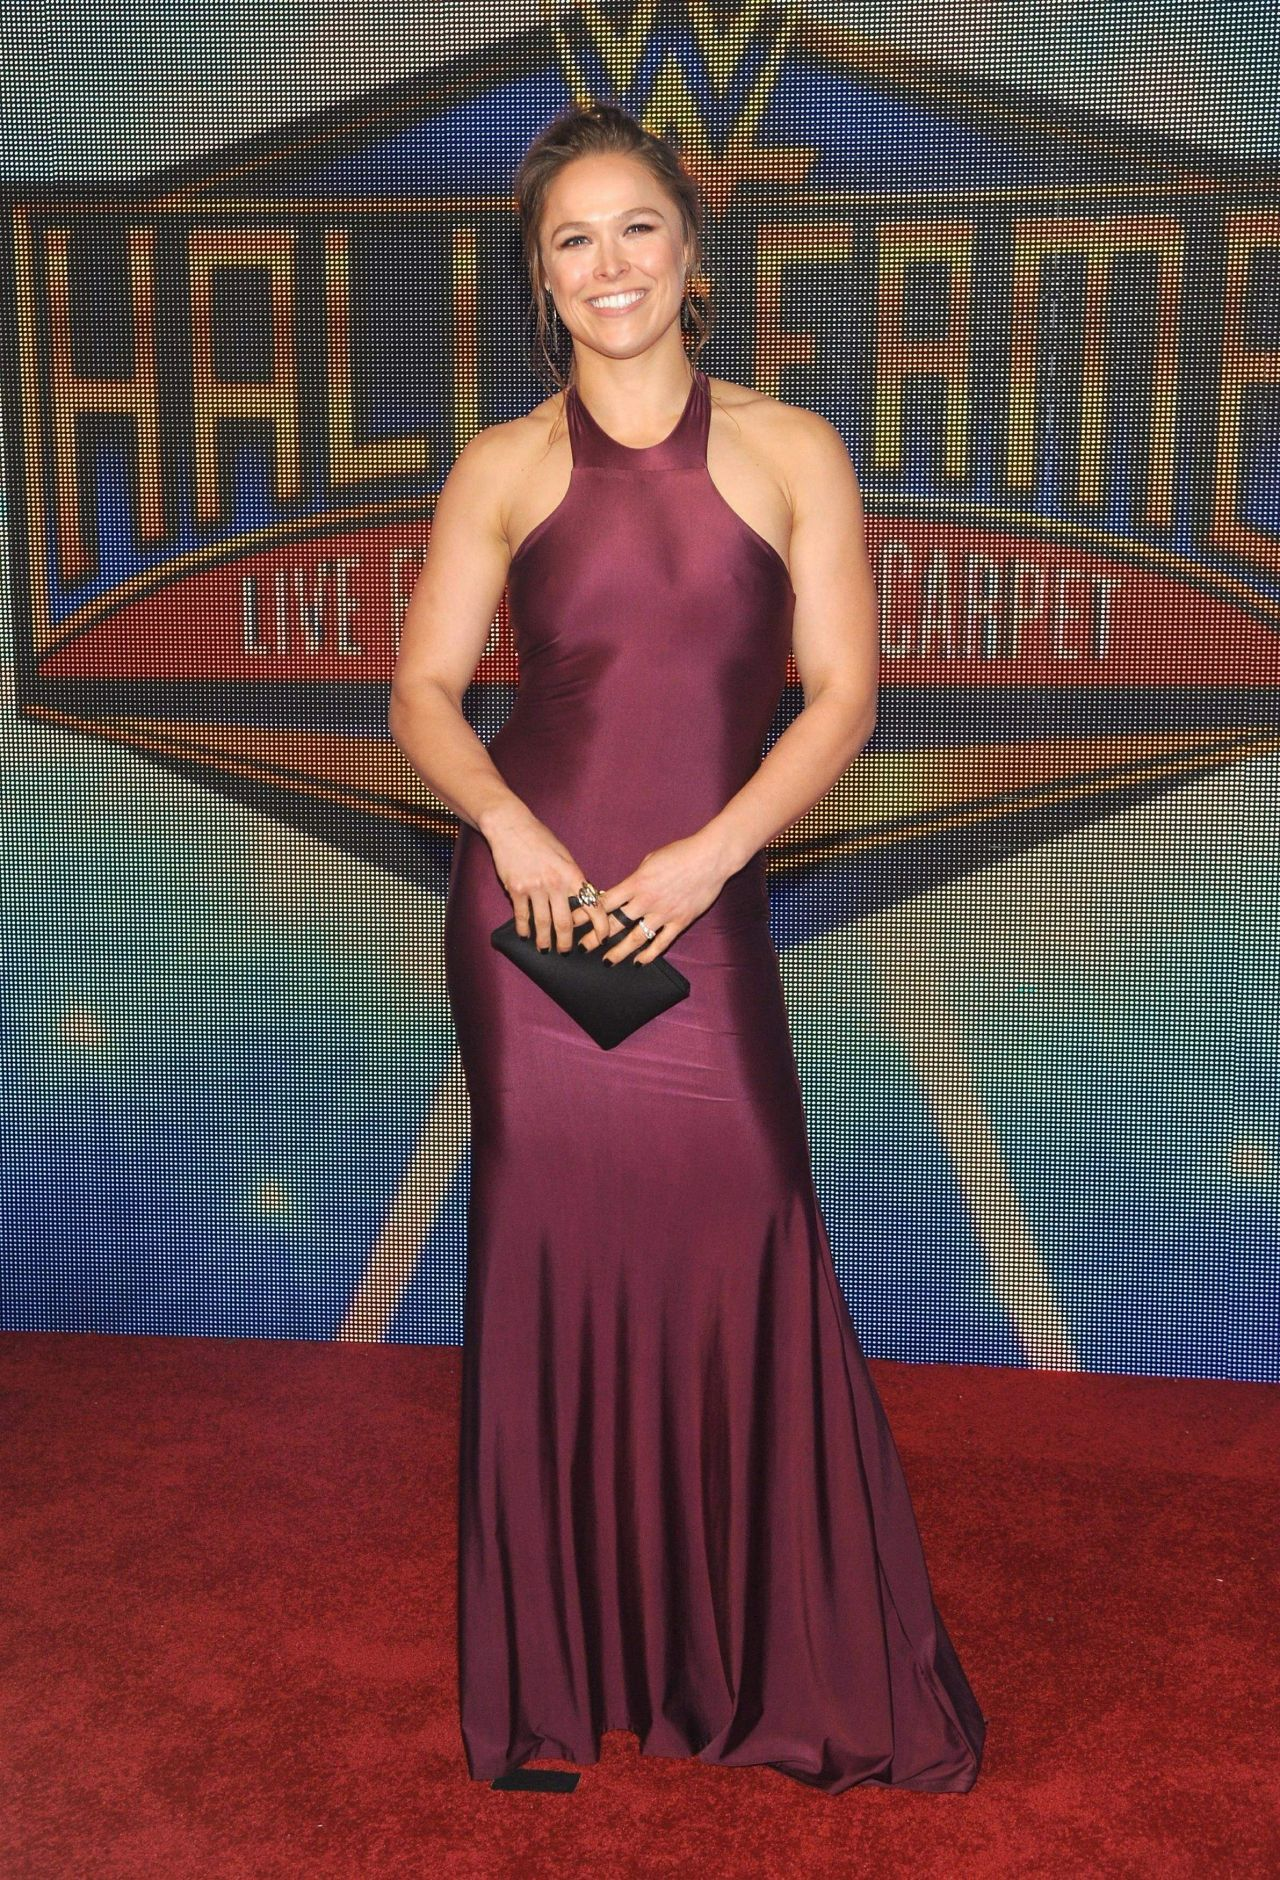 ronda rousey wwes 2018 hall of fame induction ceremony